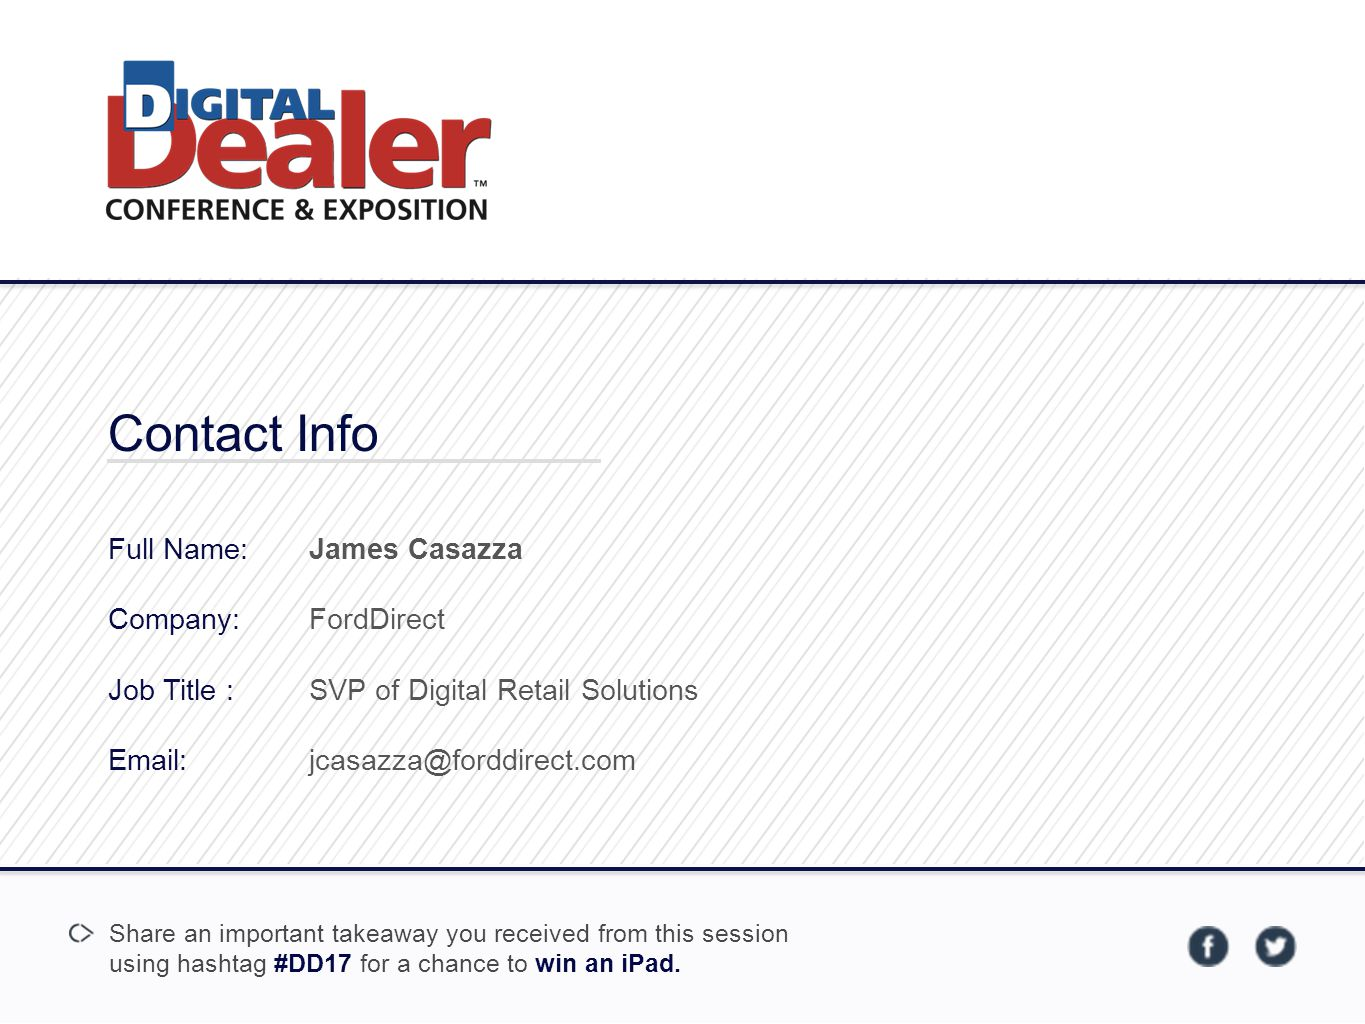 Contact Info Full Name: Company: Job Title : Email: James Casazza. FordDirect. SVP of Digital Retail Solutions.